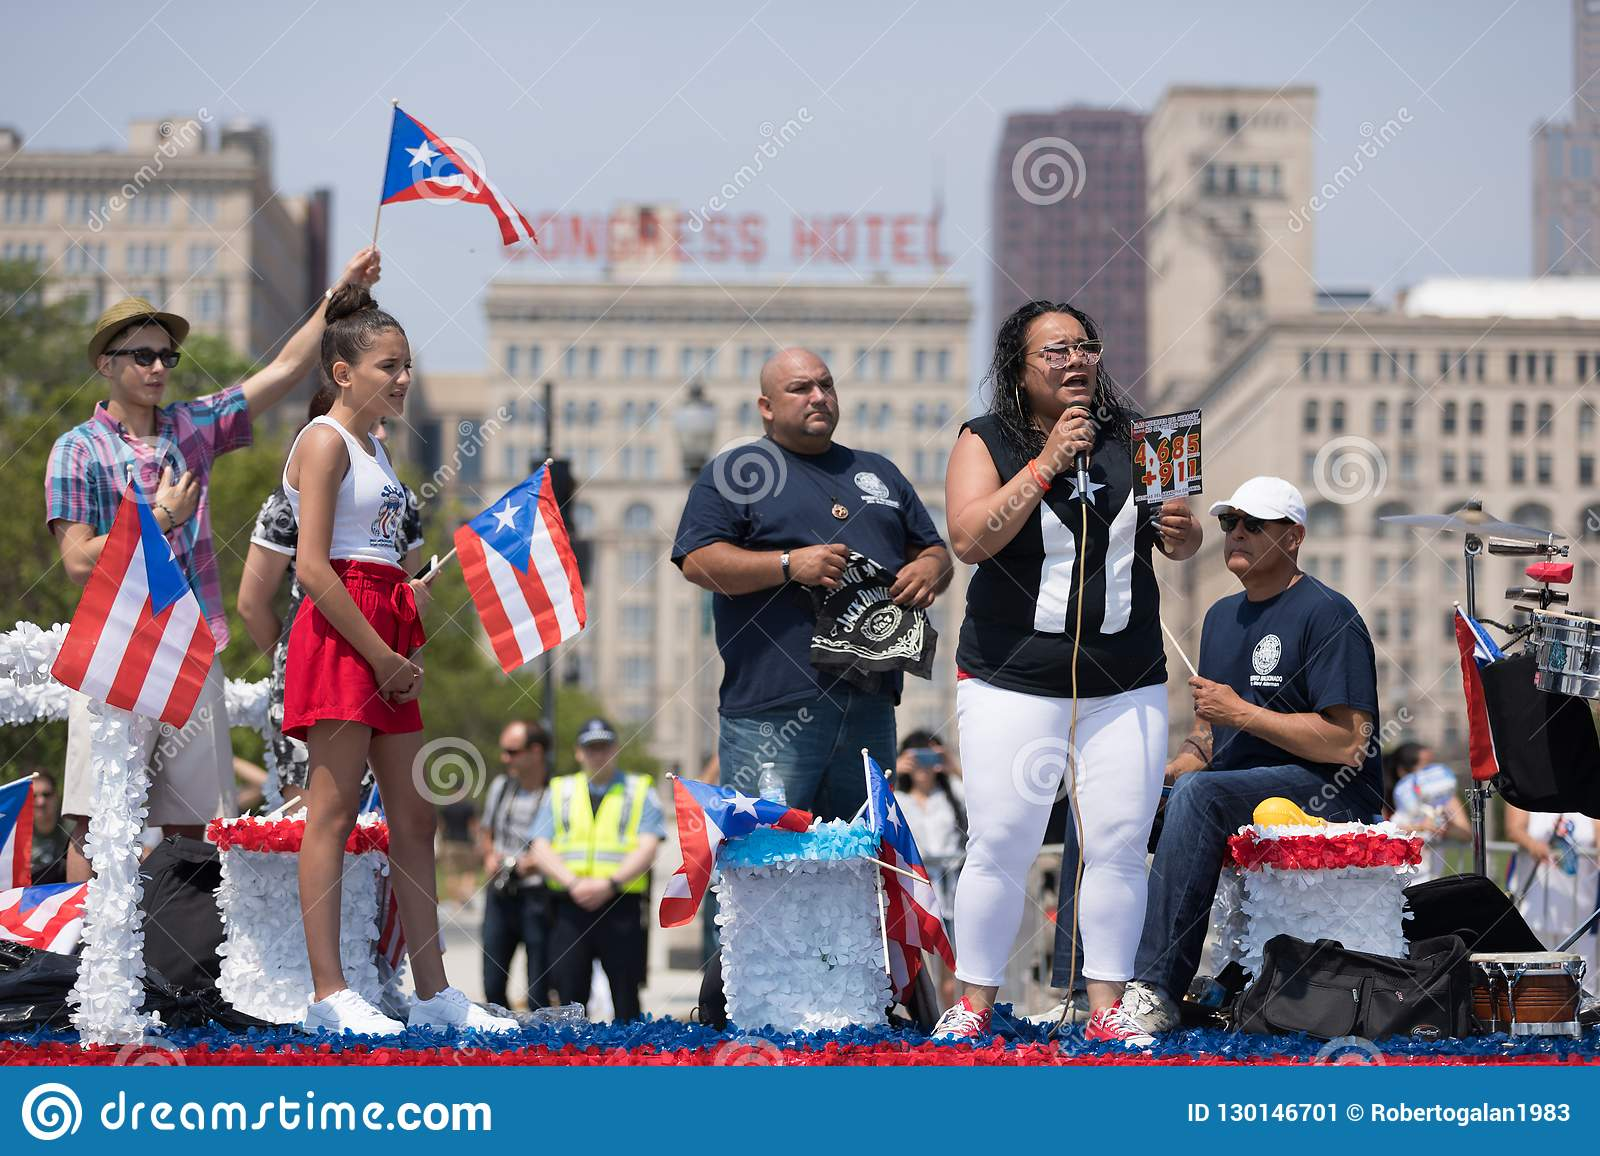 The Puerto Rican Day Parade 2018